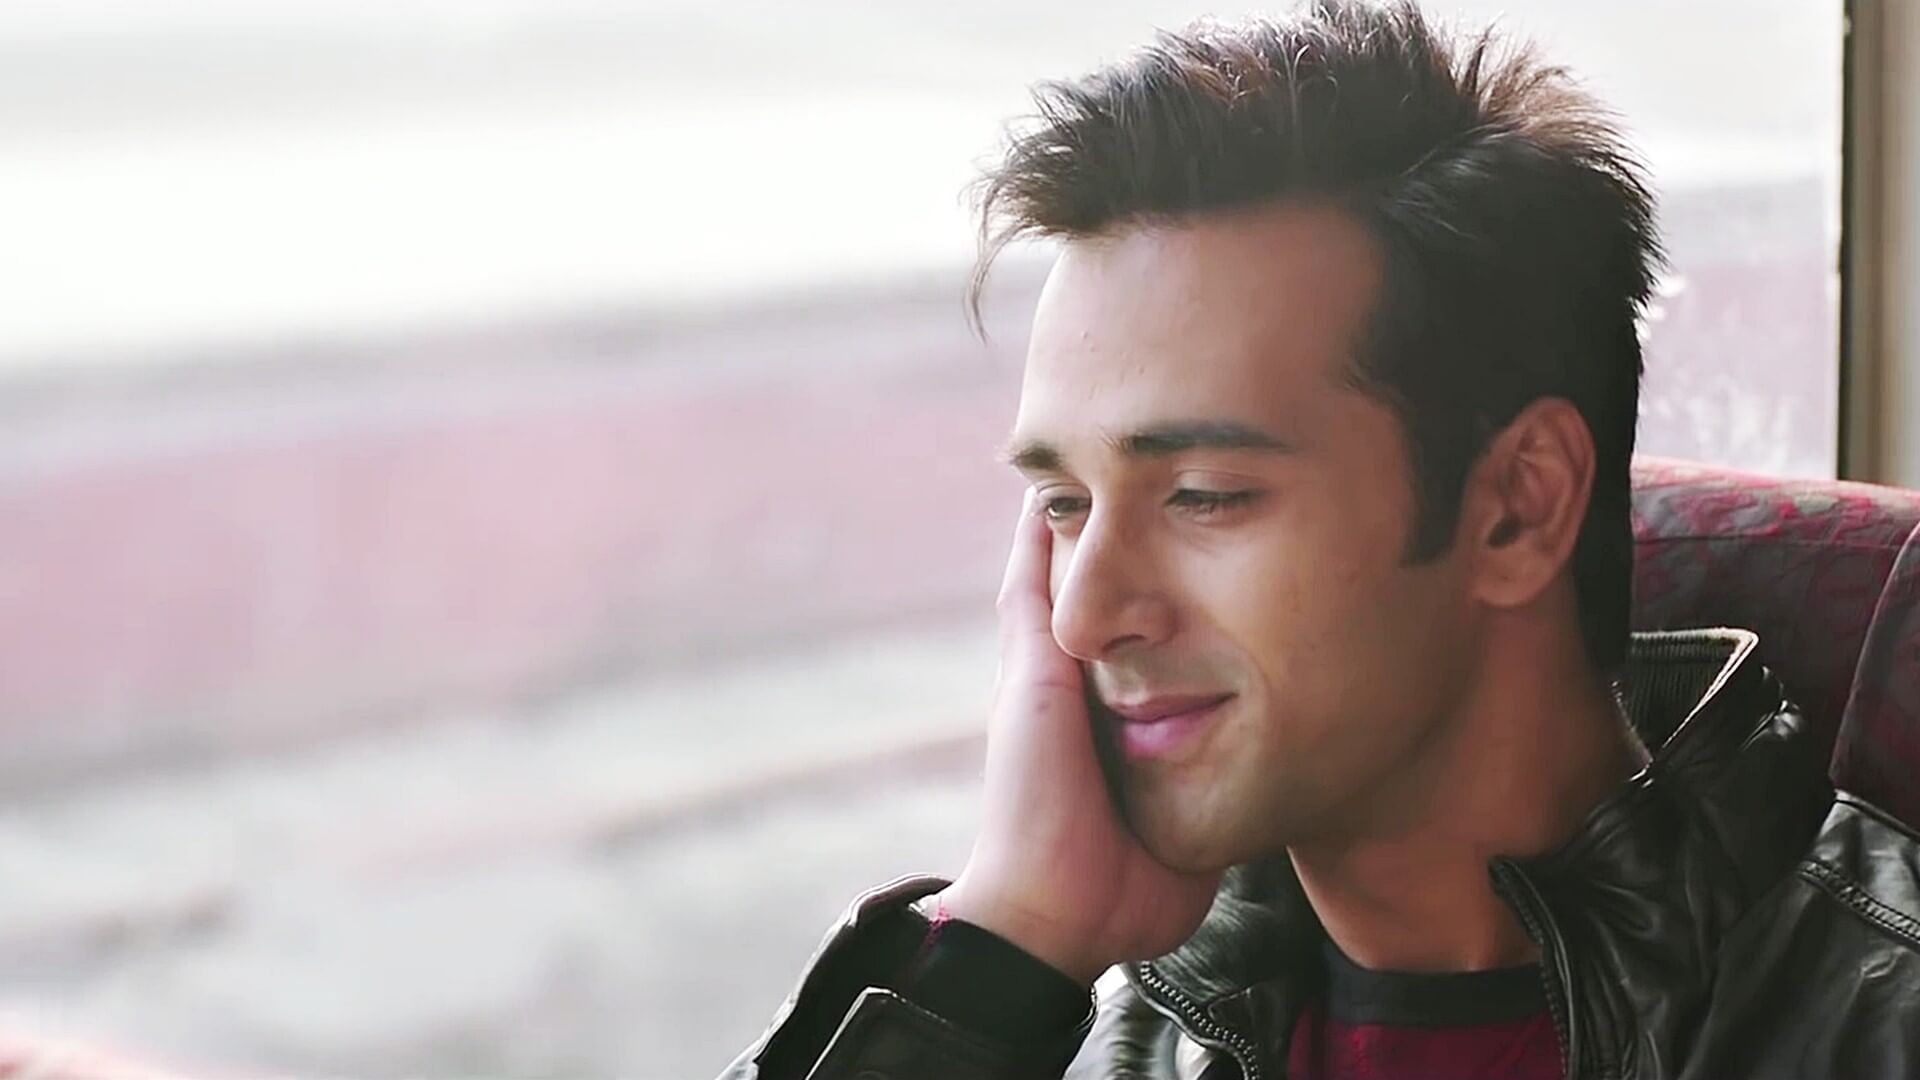 Pulkit Samrat Wife, Movies, Age, Height, Images(photo), Biography, Hairstyle, Girlfriend, Family, Married, Net Worth, Education, Wiki, Twitter, Instagram, Facebook, Imdb (14)